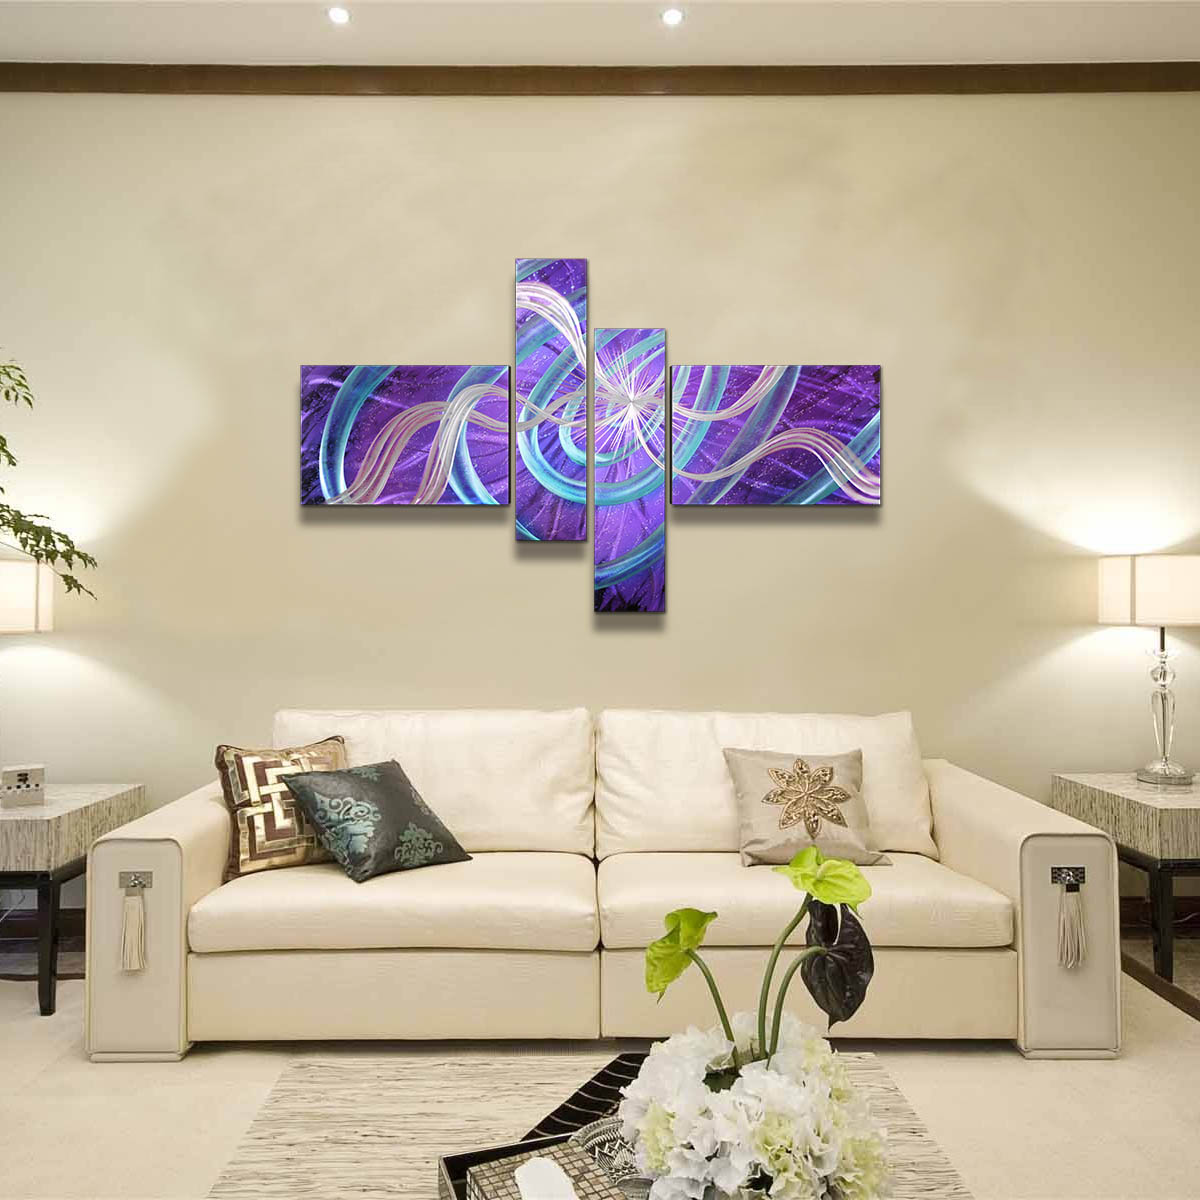 Exquisite 4 panel Aluminum Wall Art Wall Sculptures Stars Abstract Etched Pattern Hanging Wall Decoration for Home Living Room